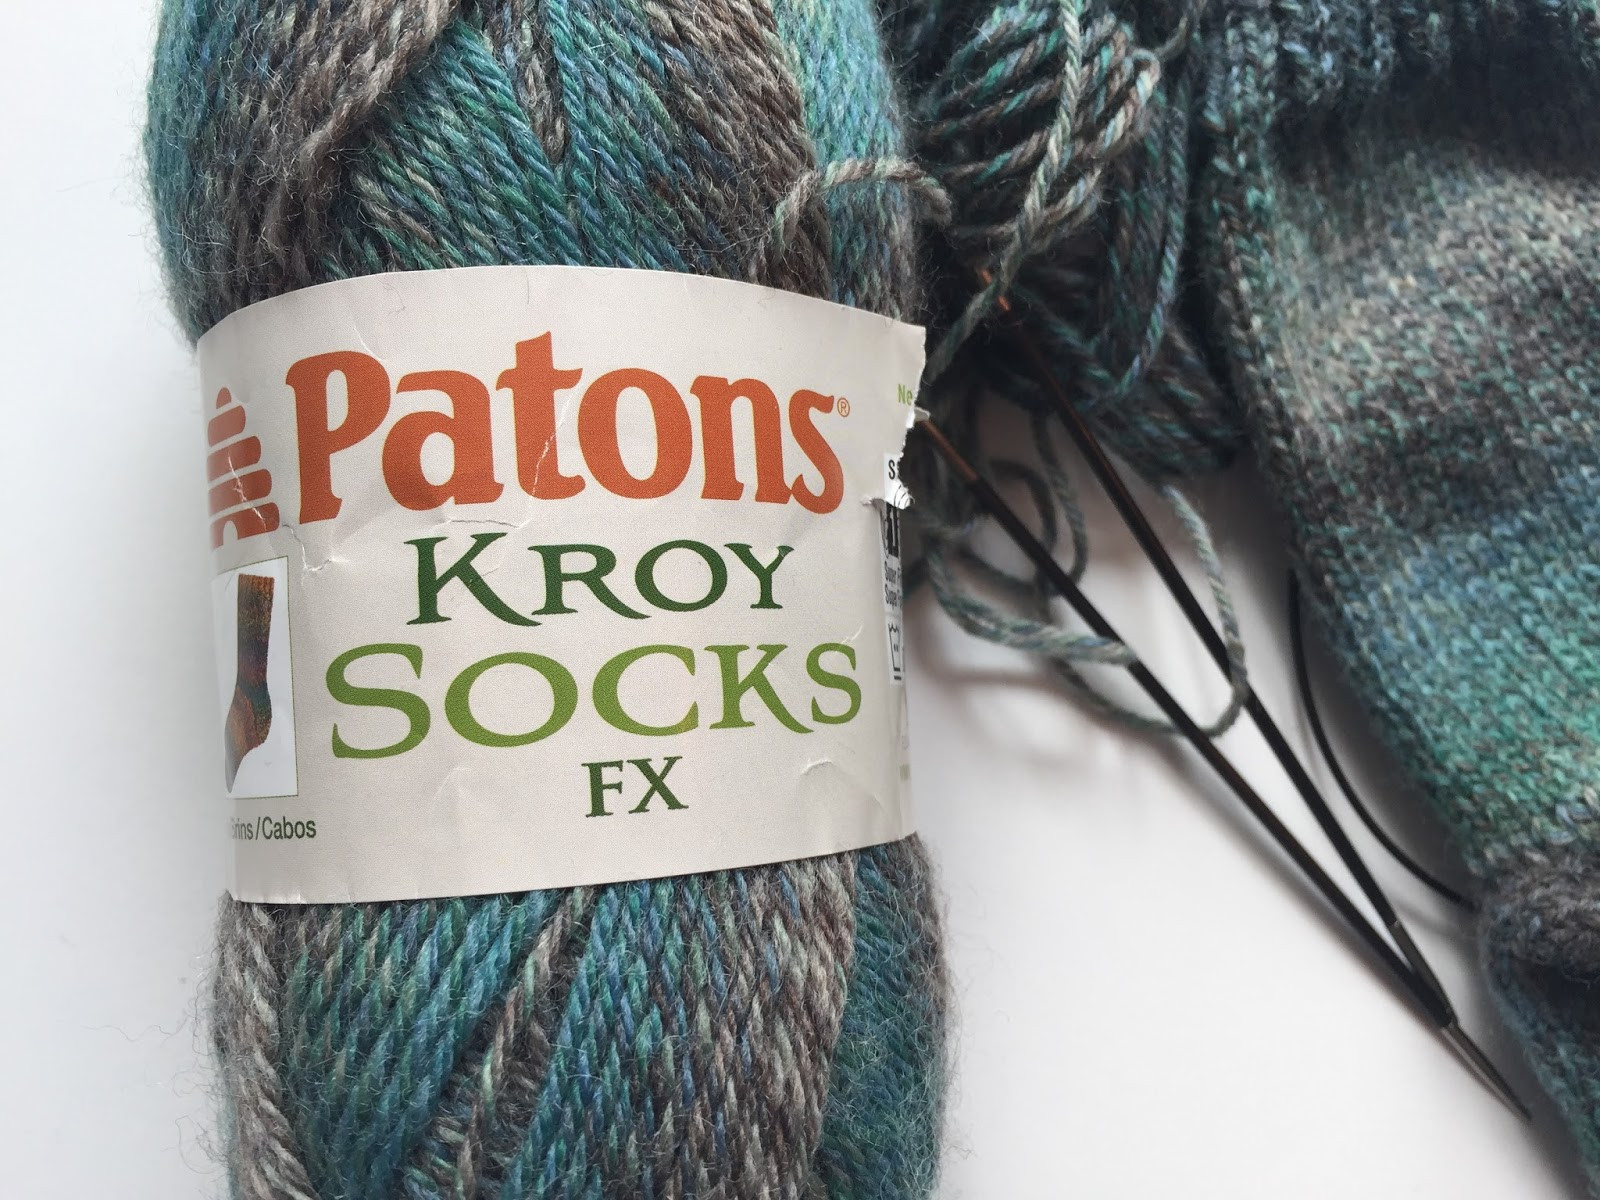 Patons Kroy socks Beautiful Knitting Like Crazy sometimes You Need something New Of Gorgeous 46 Images Patons Kroy socks